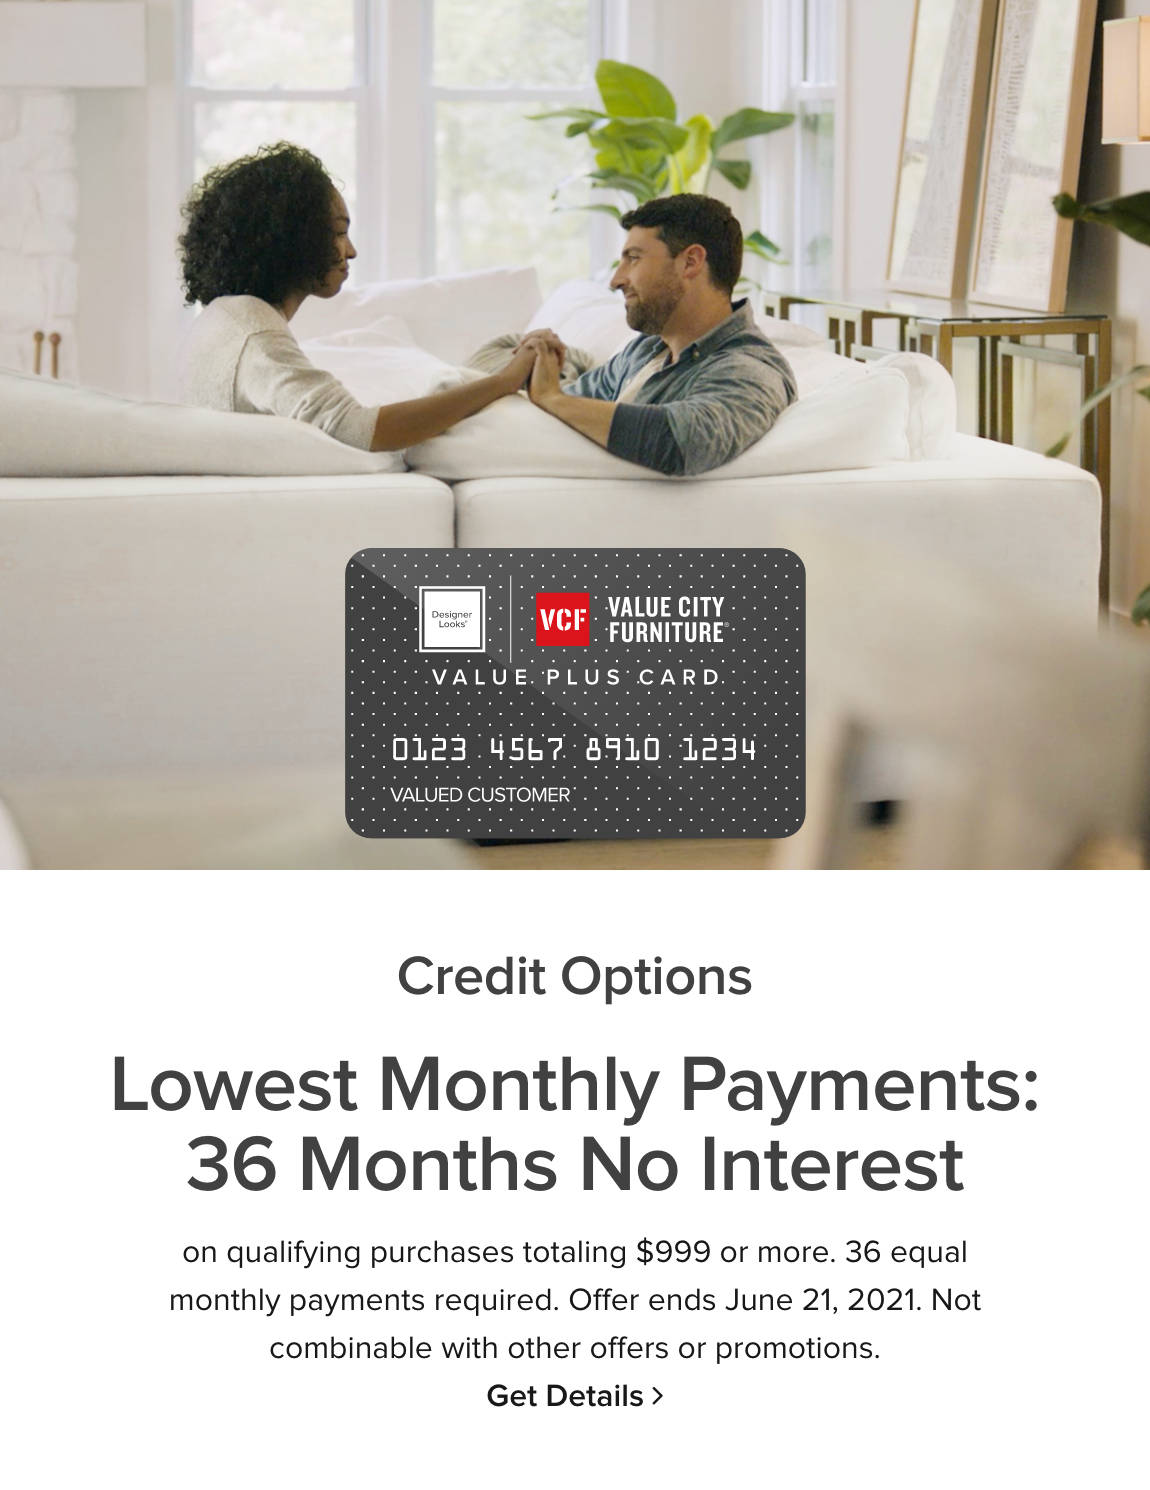 Credit Options: Lowest Monthly Payments: 36 Months No Interest - on qualifying purchases totaling $999 or more. 36 equal monthly payments required. Offer ends June 21, 2021. Not combinable with other offers or promotions. Get Details